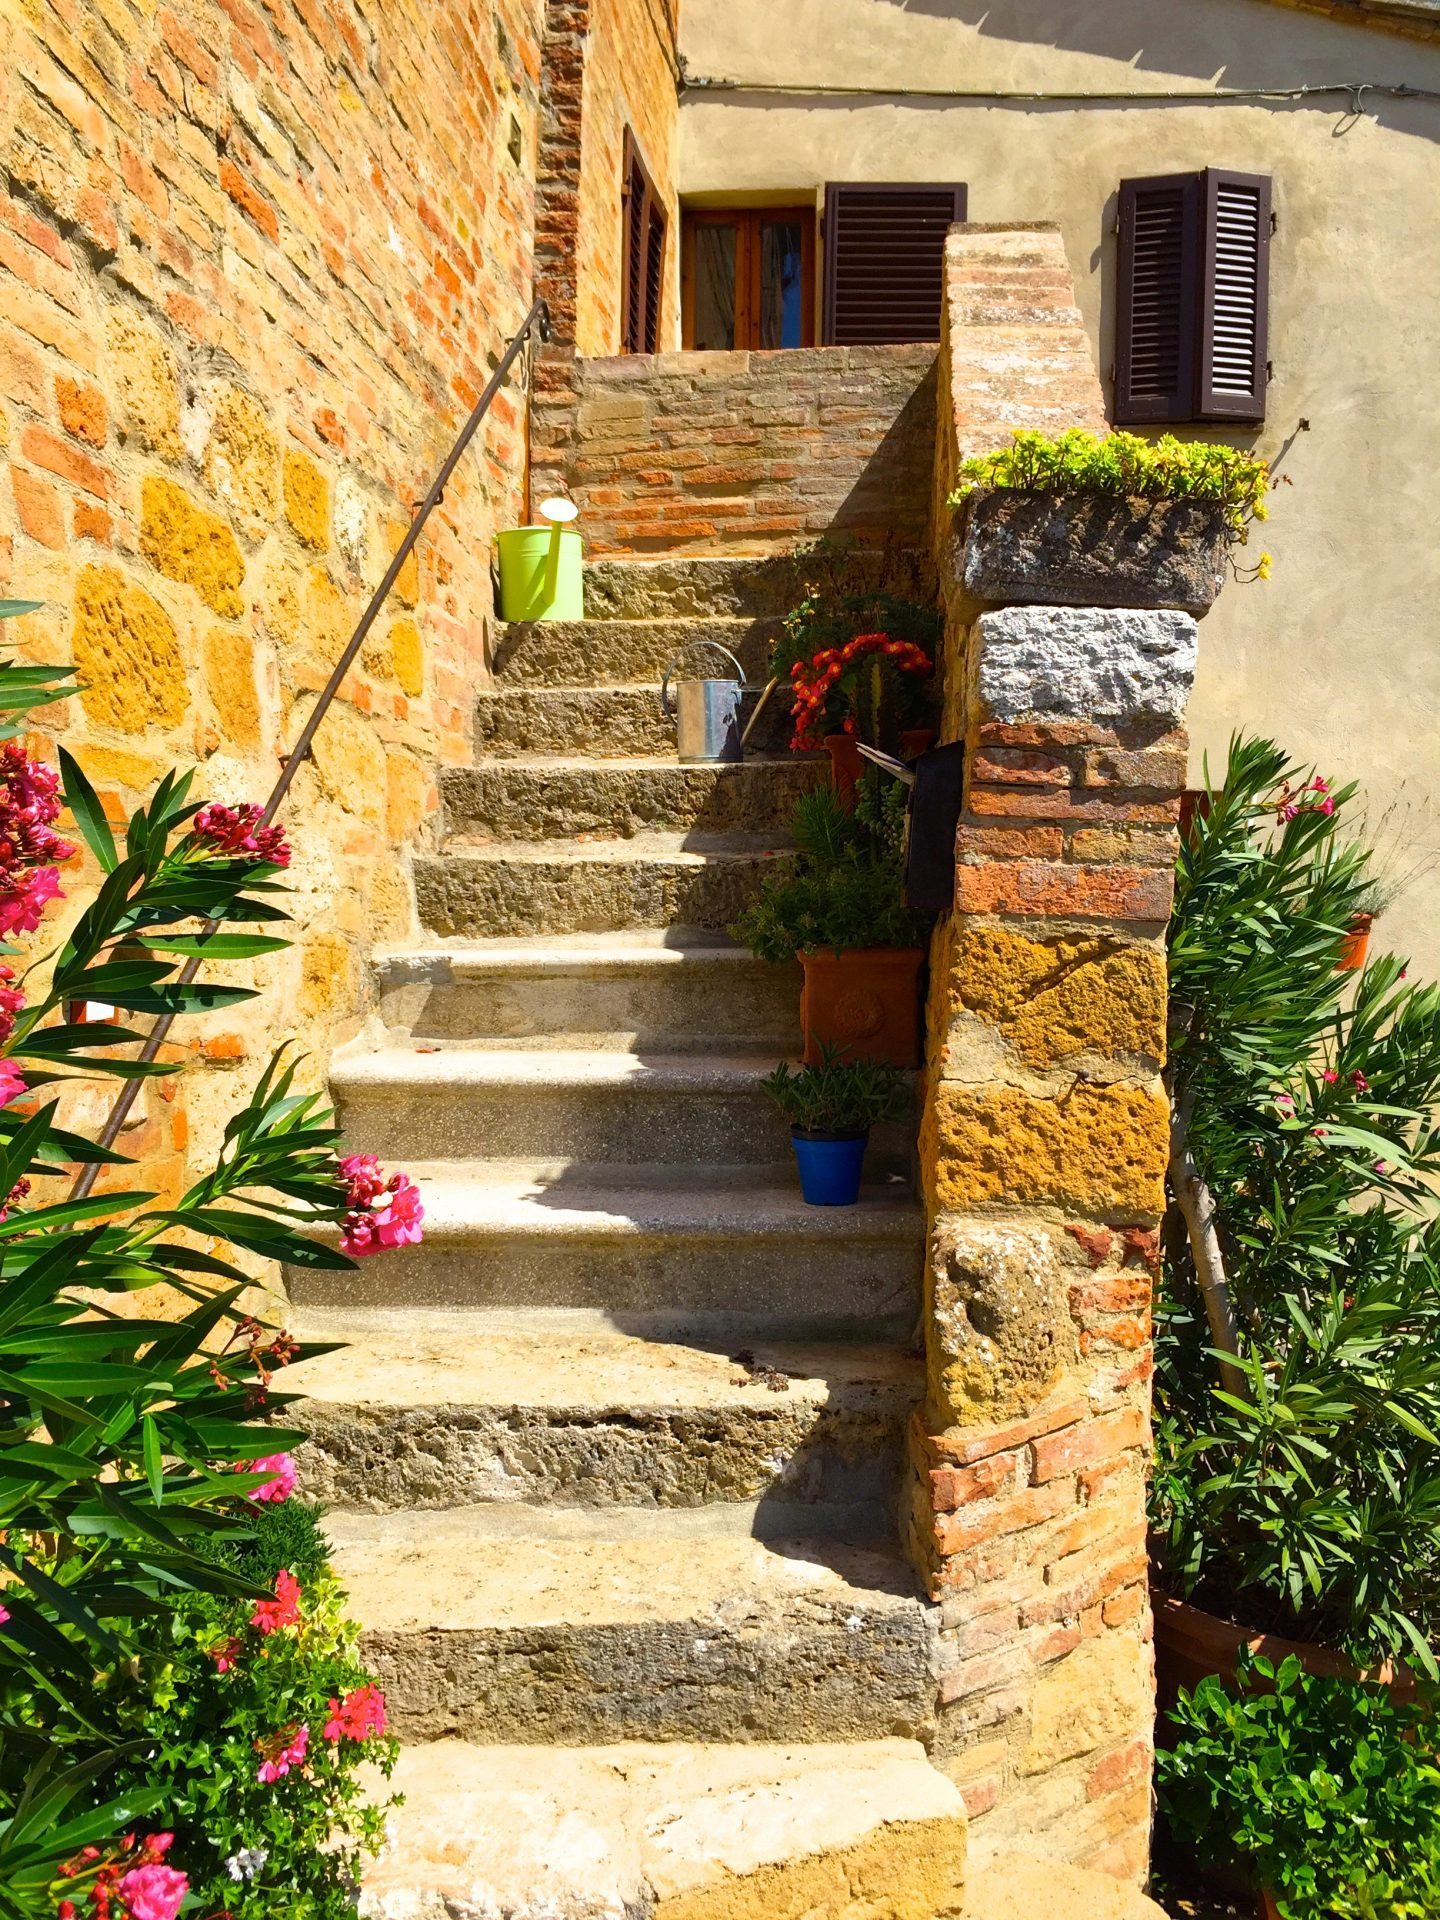 Happened upon a picturesque outdoor staircase in Pienza Tuscany.